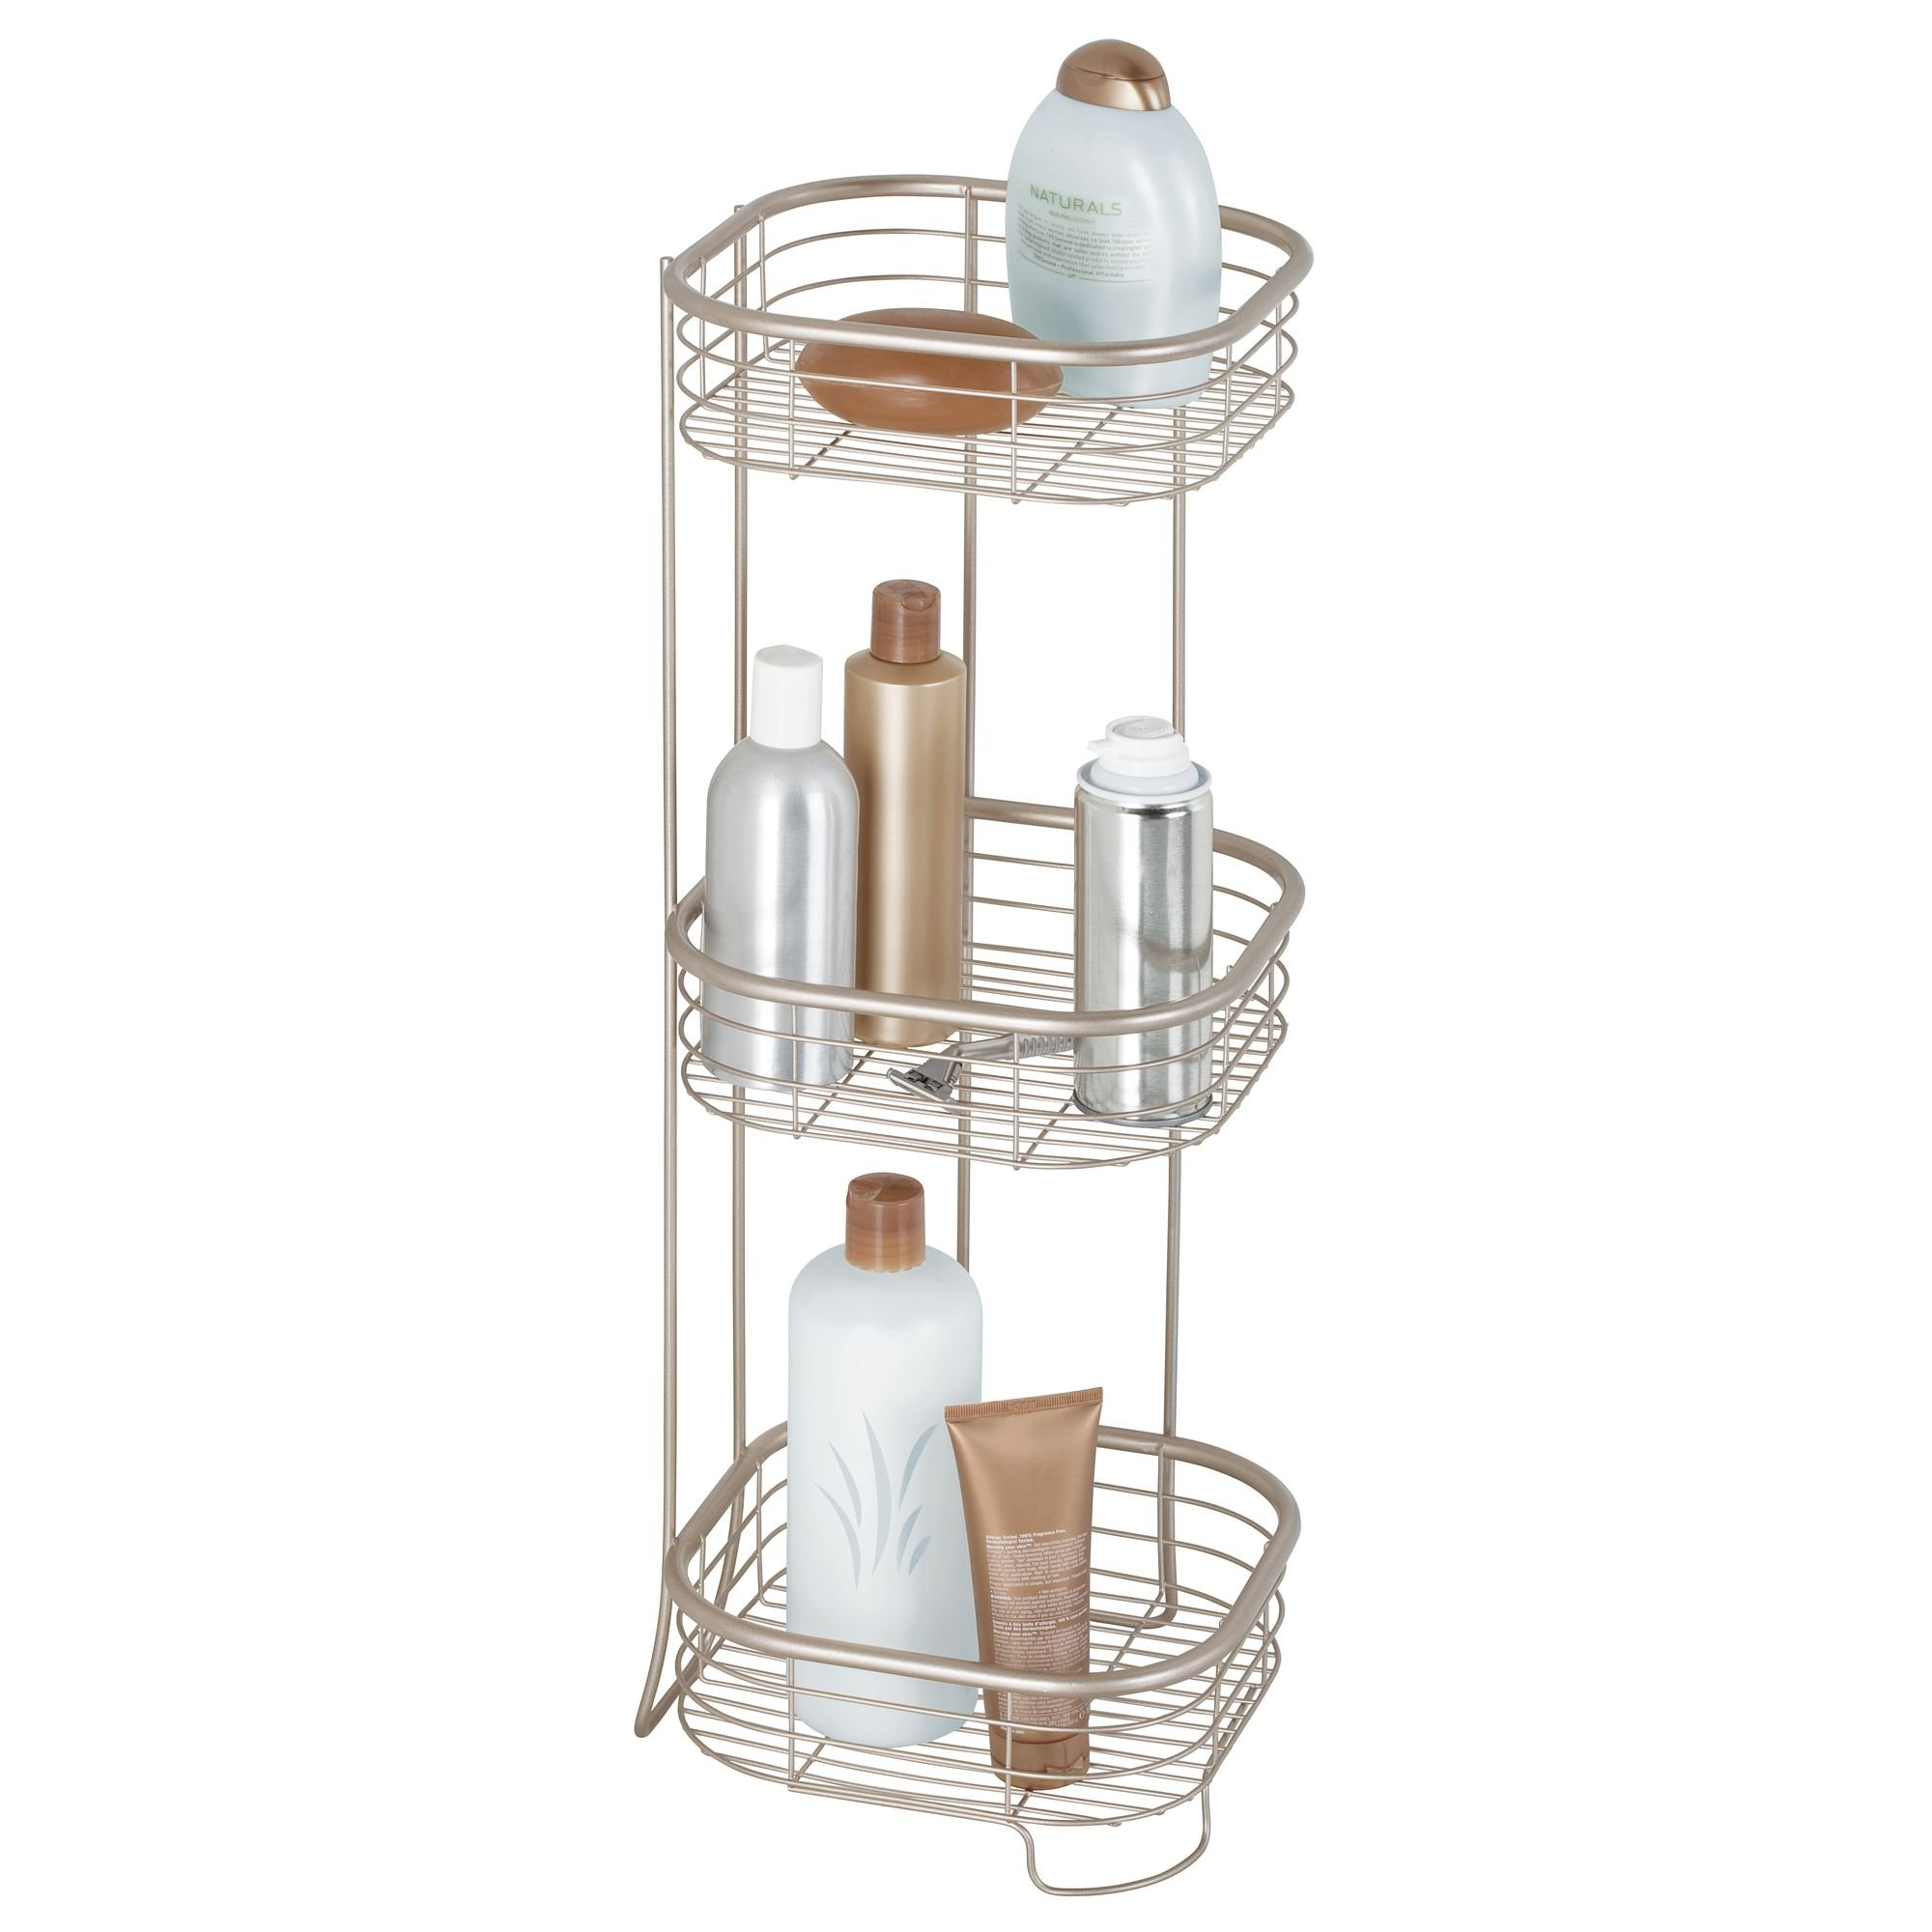 iDesign Forma Metal Wire Corner Standing Shower Caddy, Bath Shelf Baskets for Shampoo, Conditioner, Soap, 9.5'' x 9.5'' x 26.25'', Satin Silver by iDesign